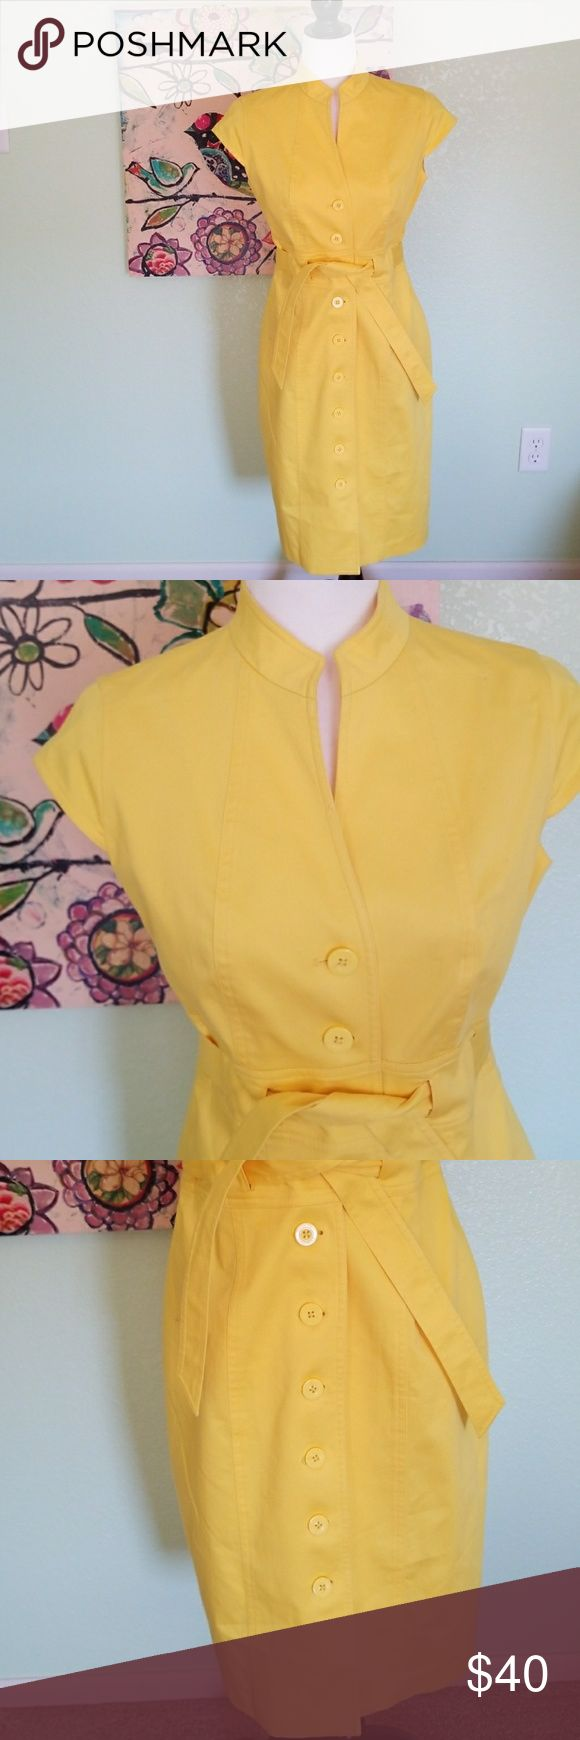 CALVIN KLEIN beautiful yellow dress size 6. CALVIN KLEIN beautiful yellow button down belted dress size 6 in excellent used condition. Calvin Klein Dresses High Low